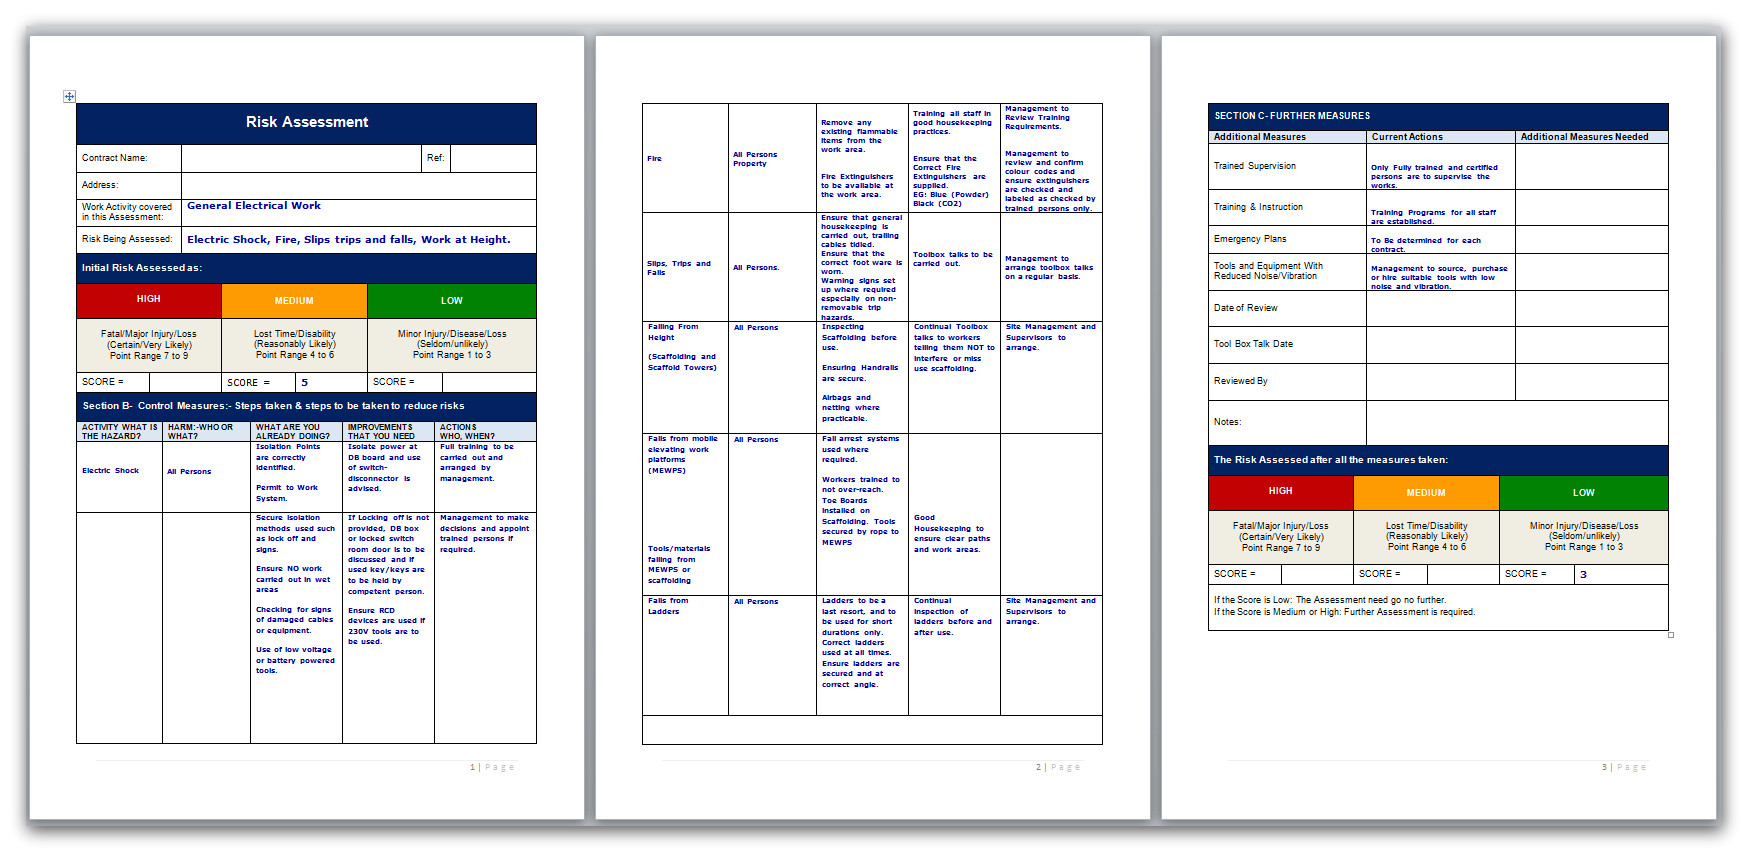 Electrical Installation Method Statement Template Free Risk assessment for General Electrical Work